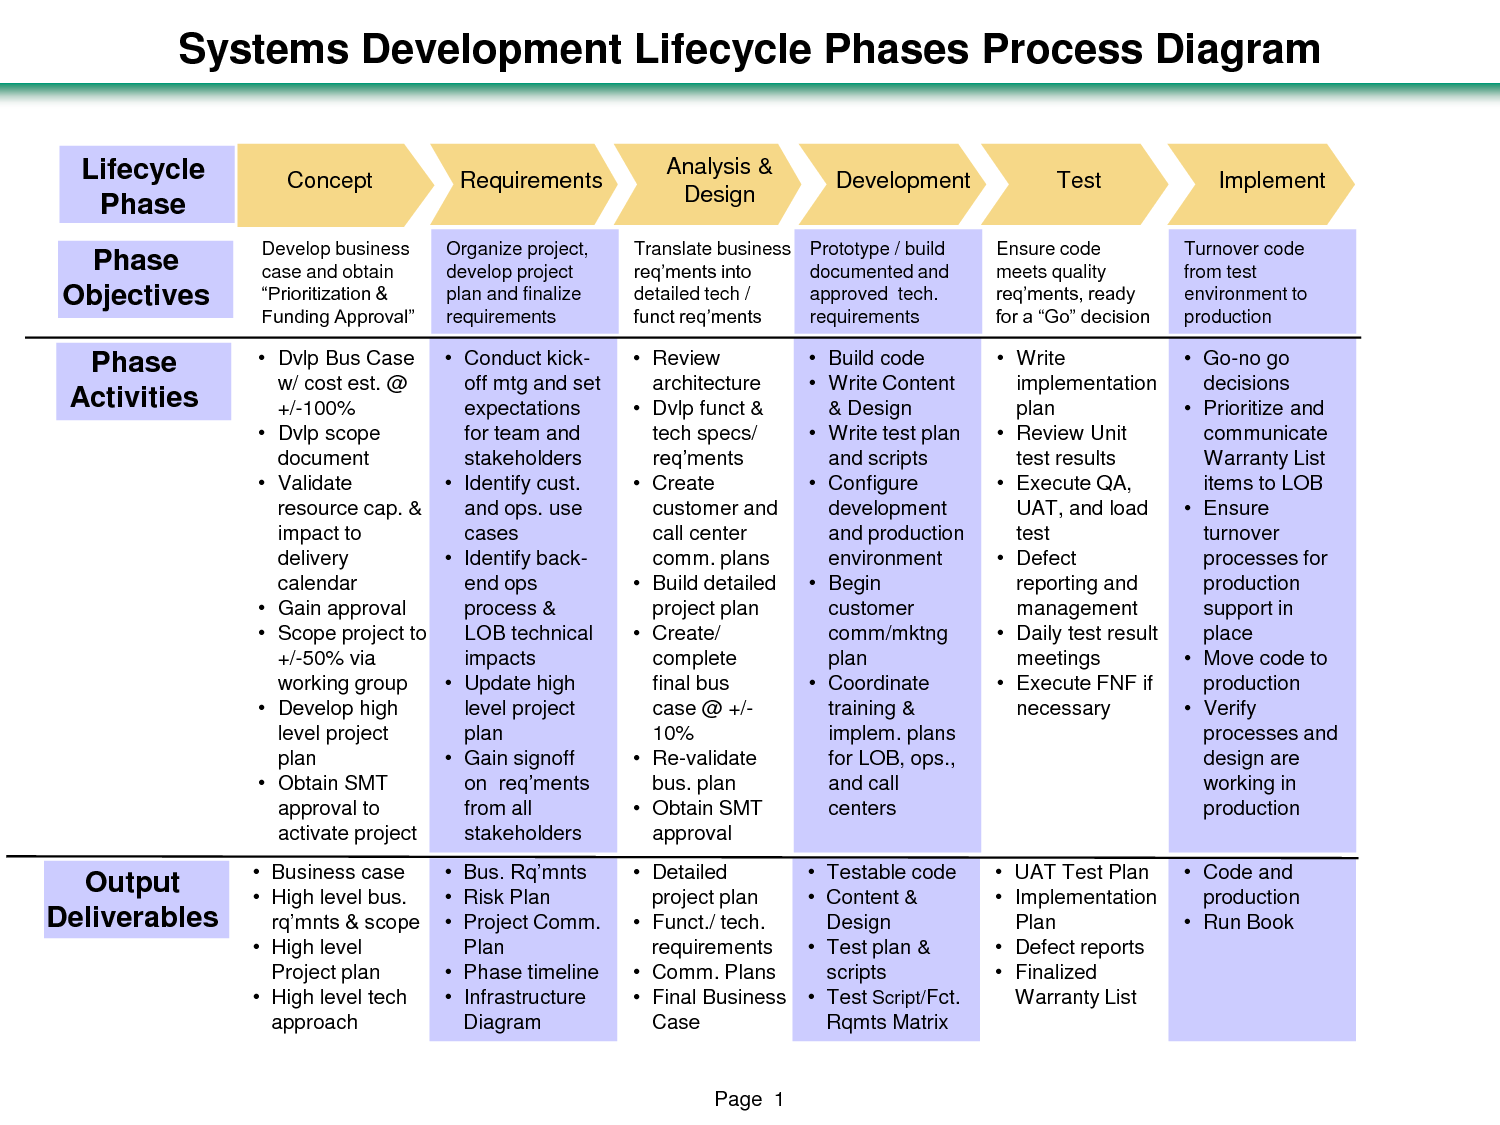 Project life cycle wiki domestic electrical wiring diagrams project life cycle phases systems development lifecycle phases 595fdb2bd81cab5e8024cdf664d028d2 545780048564968799 nvjuhfo Image collections